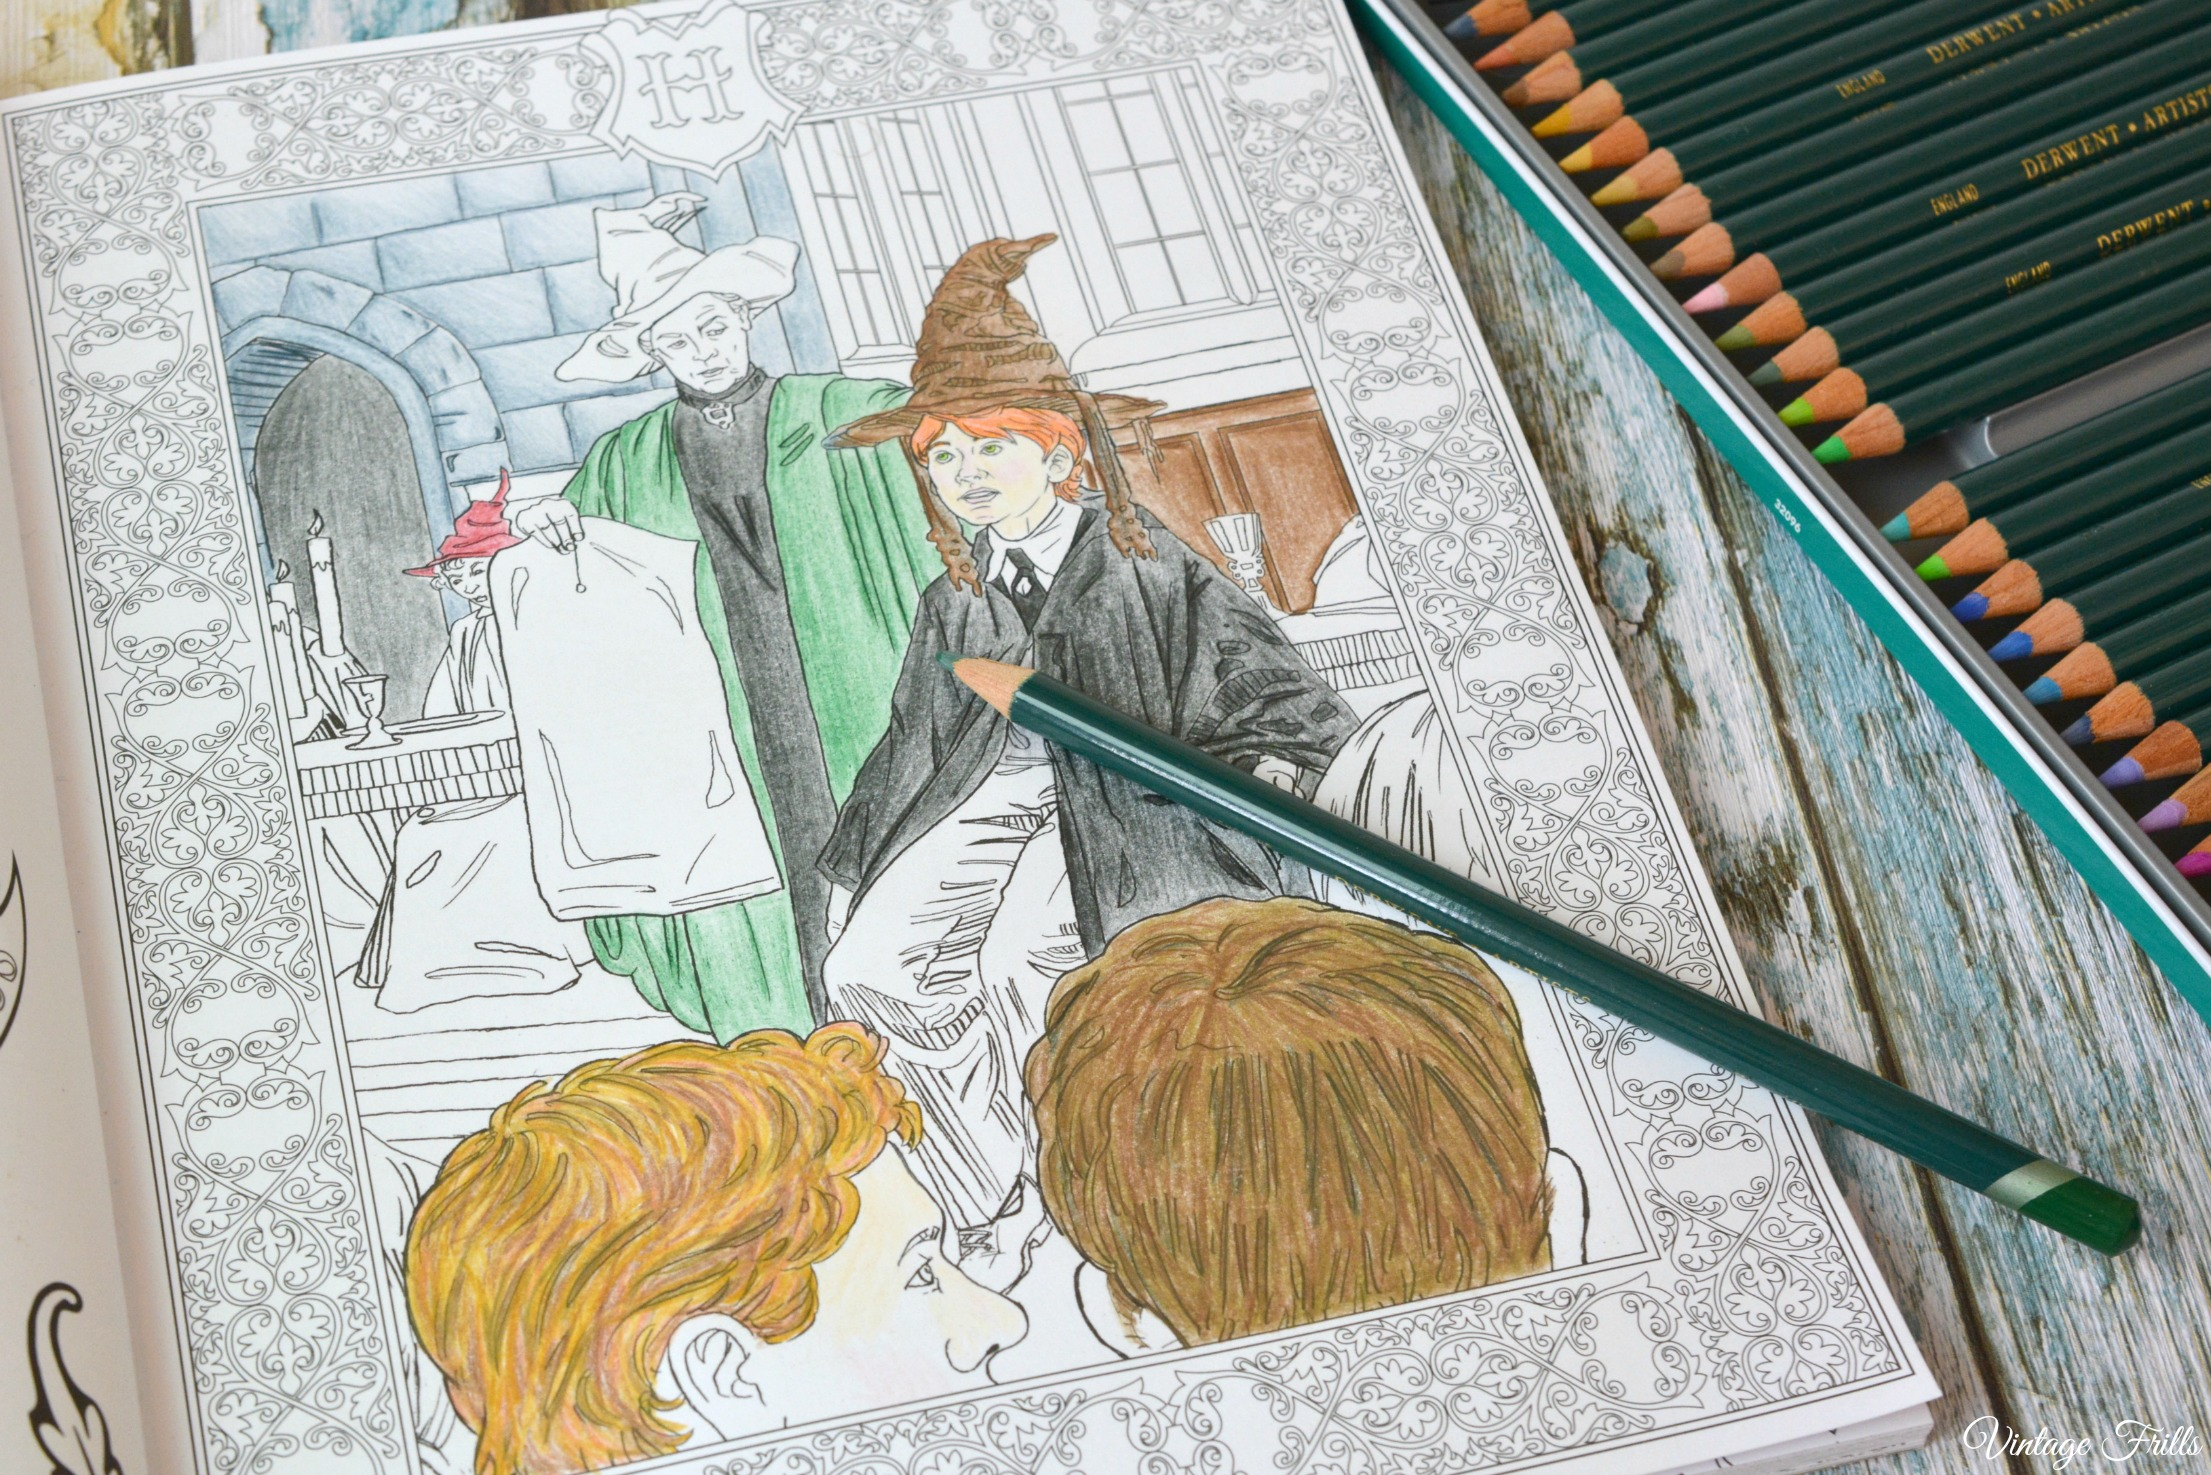 Harry Potter Coloring Book Pages Colored - Bltidm